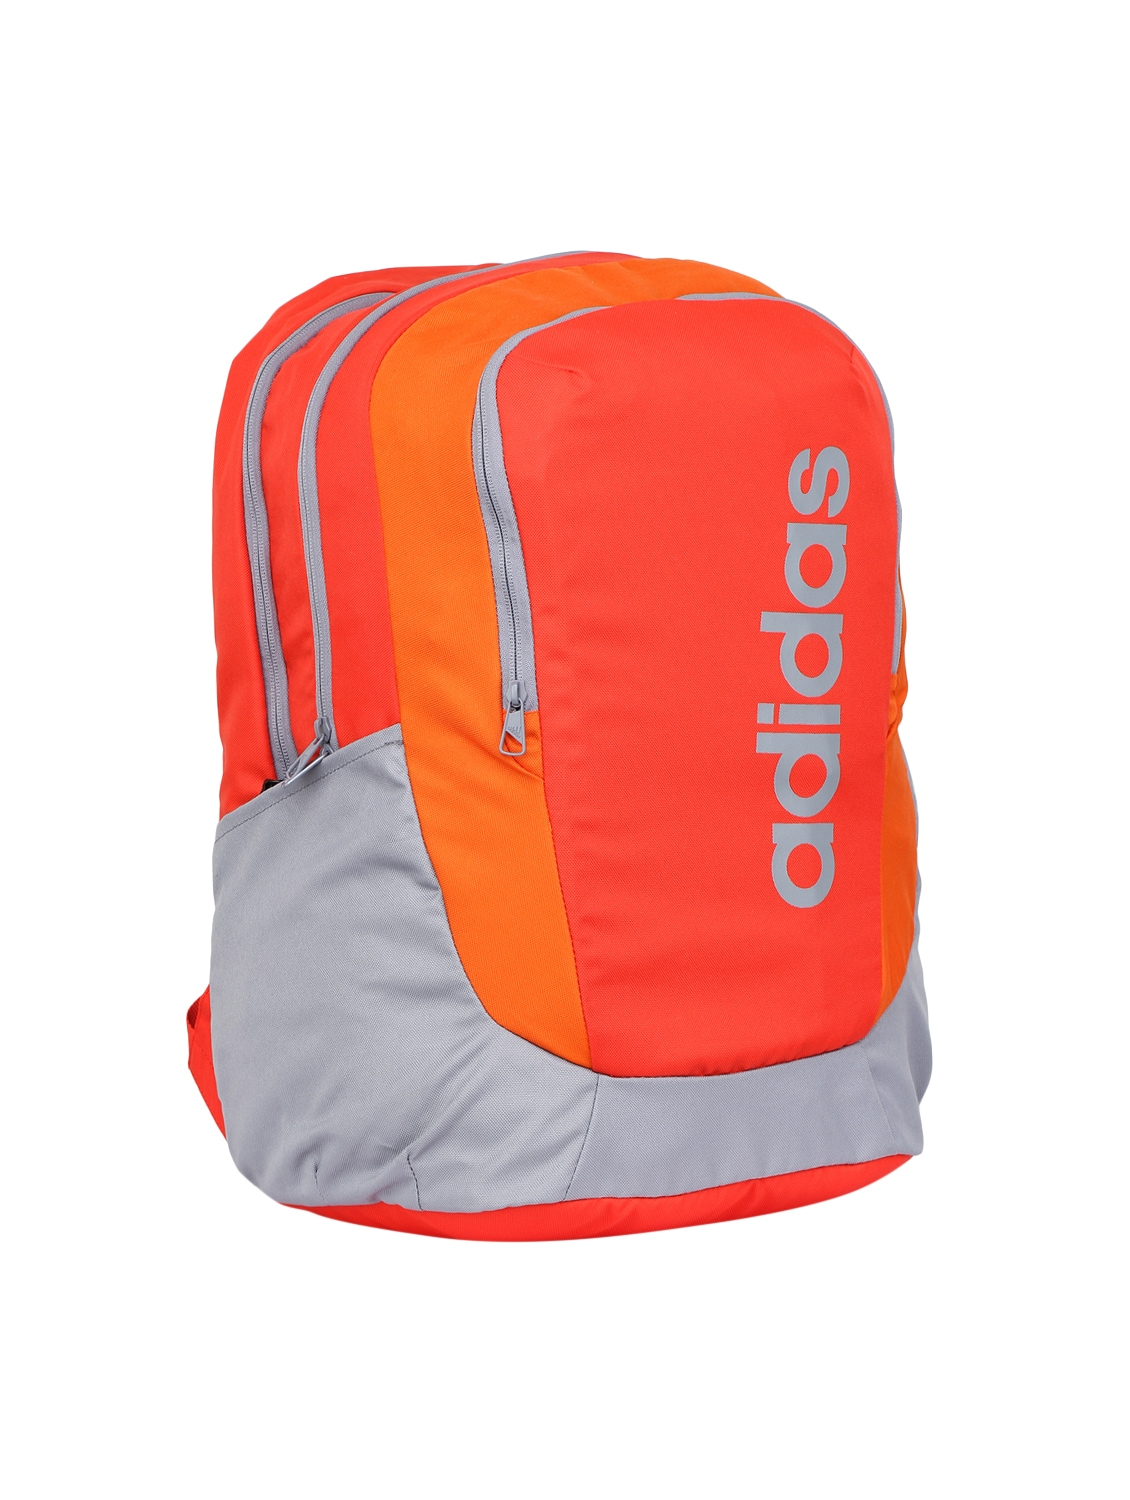 fb03982317 Buy Red   Orange Polyester Backpack for Men from Adidas for ₹2259 ...